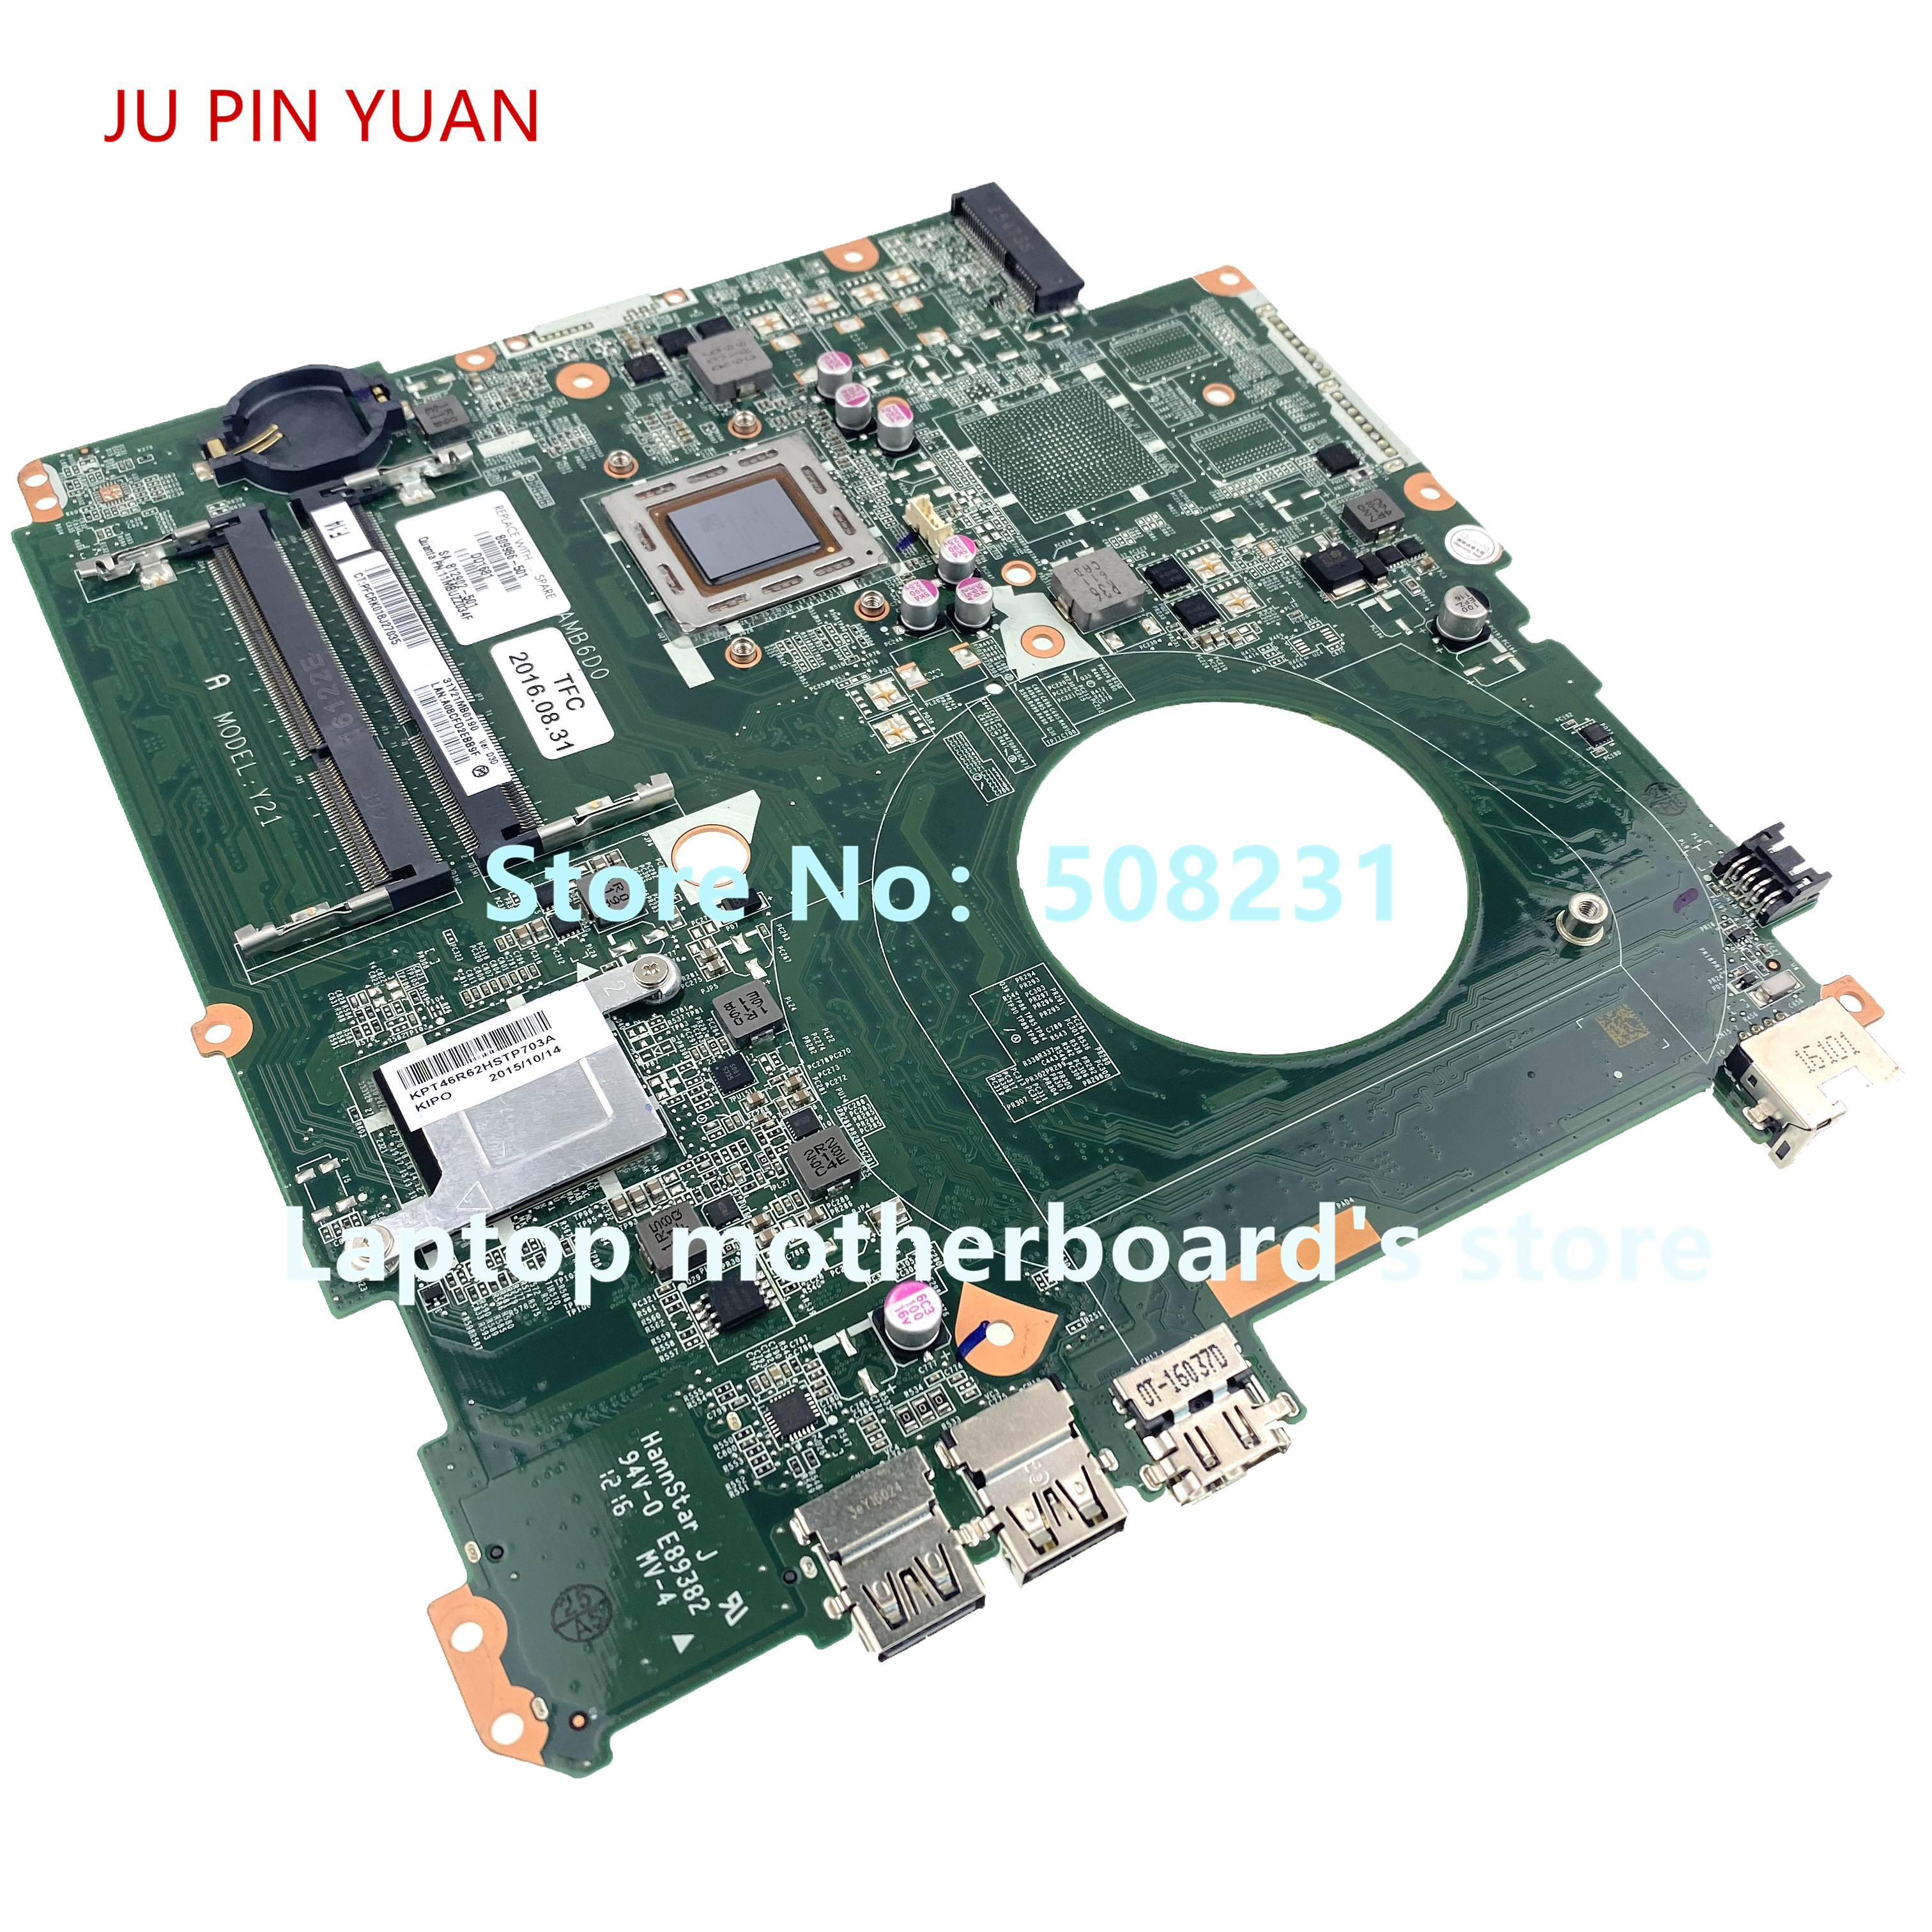 JU PIN YUAN For HP 17-P047CL 17-P 17-F Laptop Motherboard Y21A DAY21AMB6D0 809986-001 809986-501 809986-601 100% Fully Tested